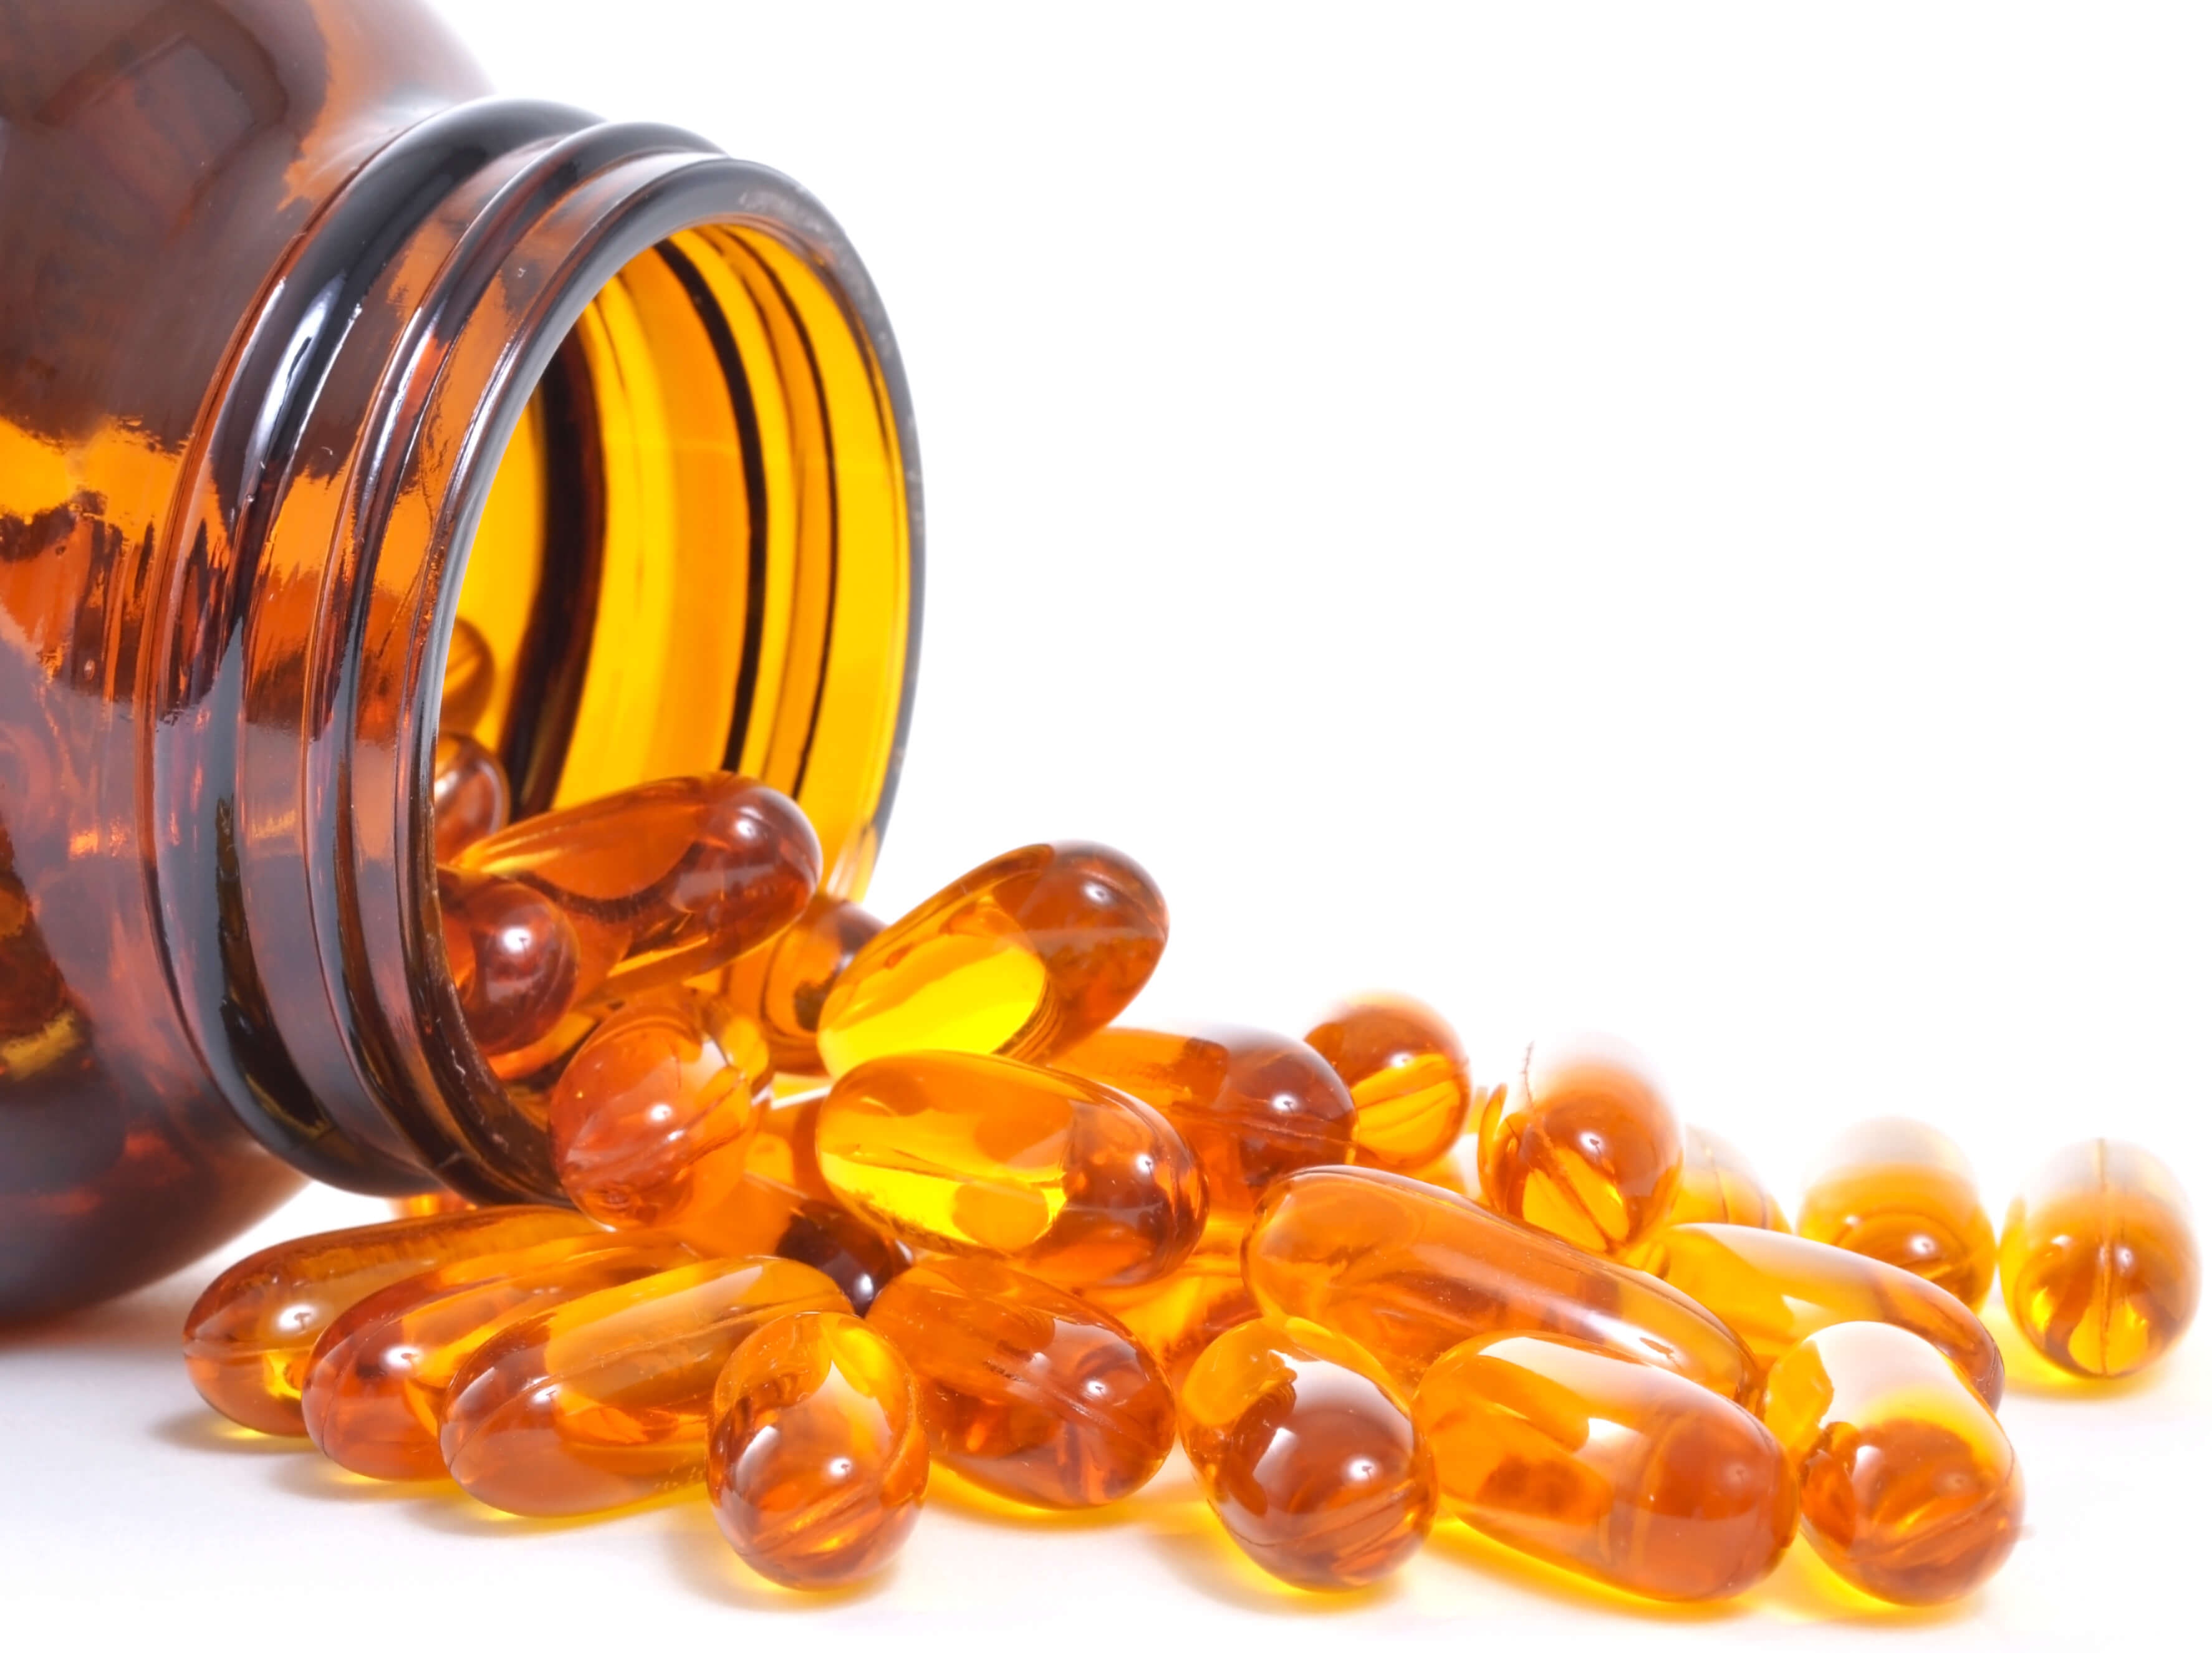 cod liver oil improves coat condition in dogs